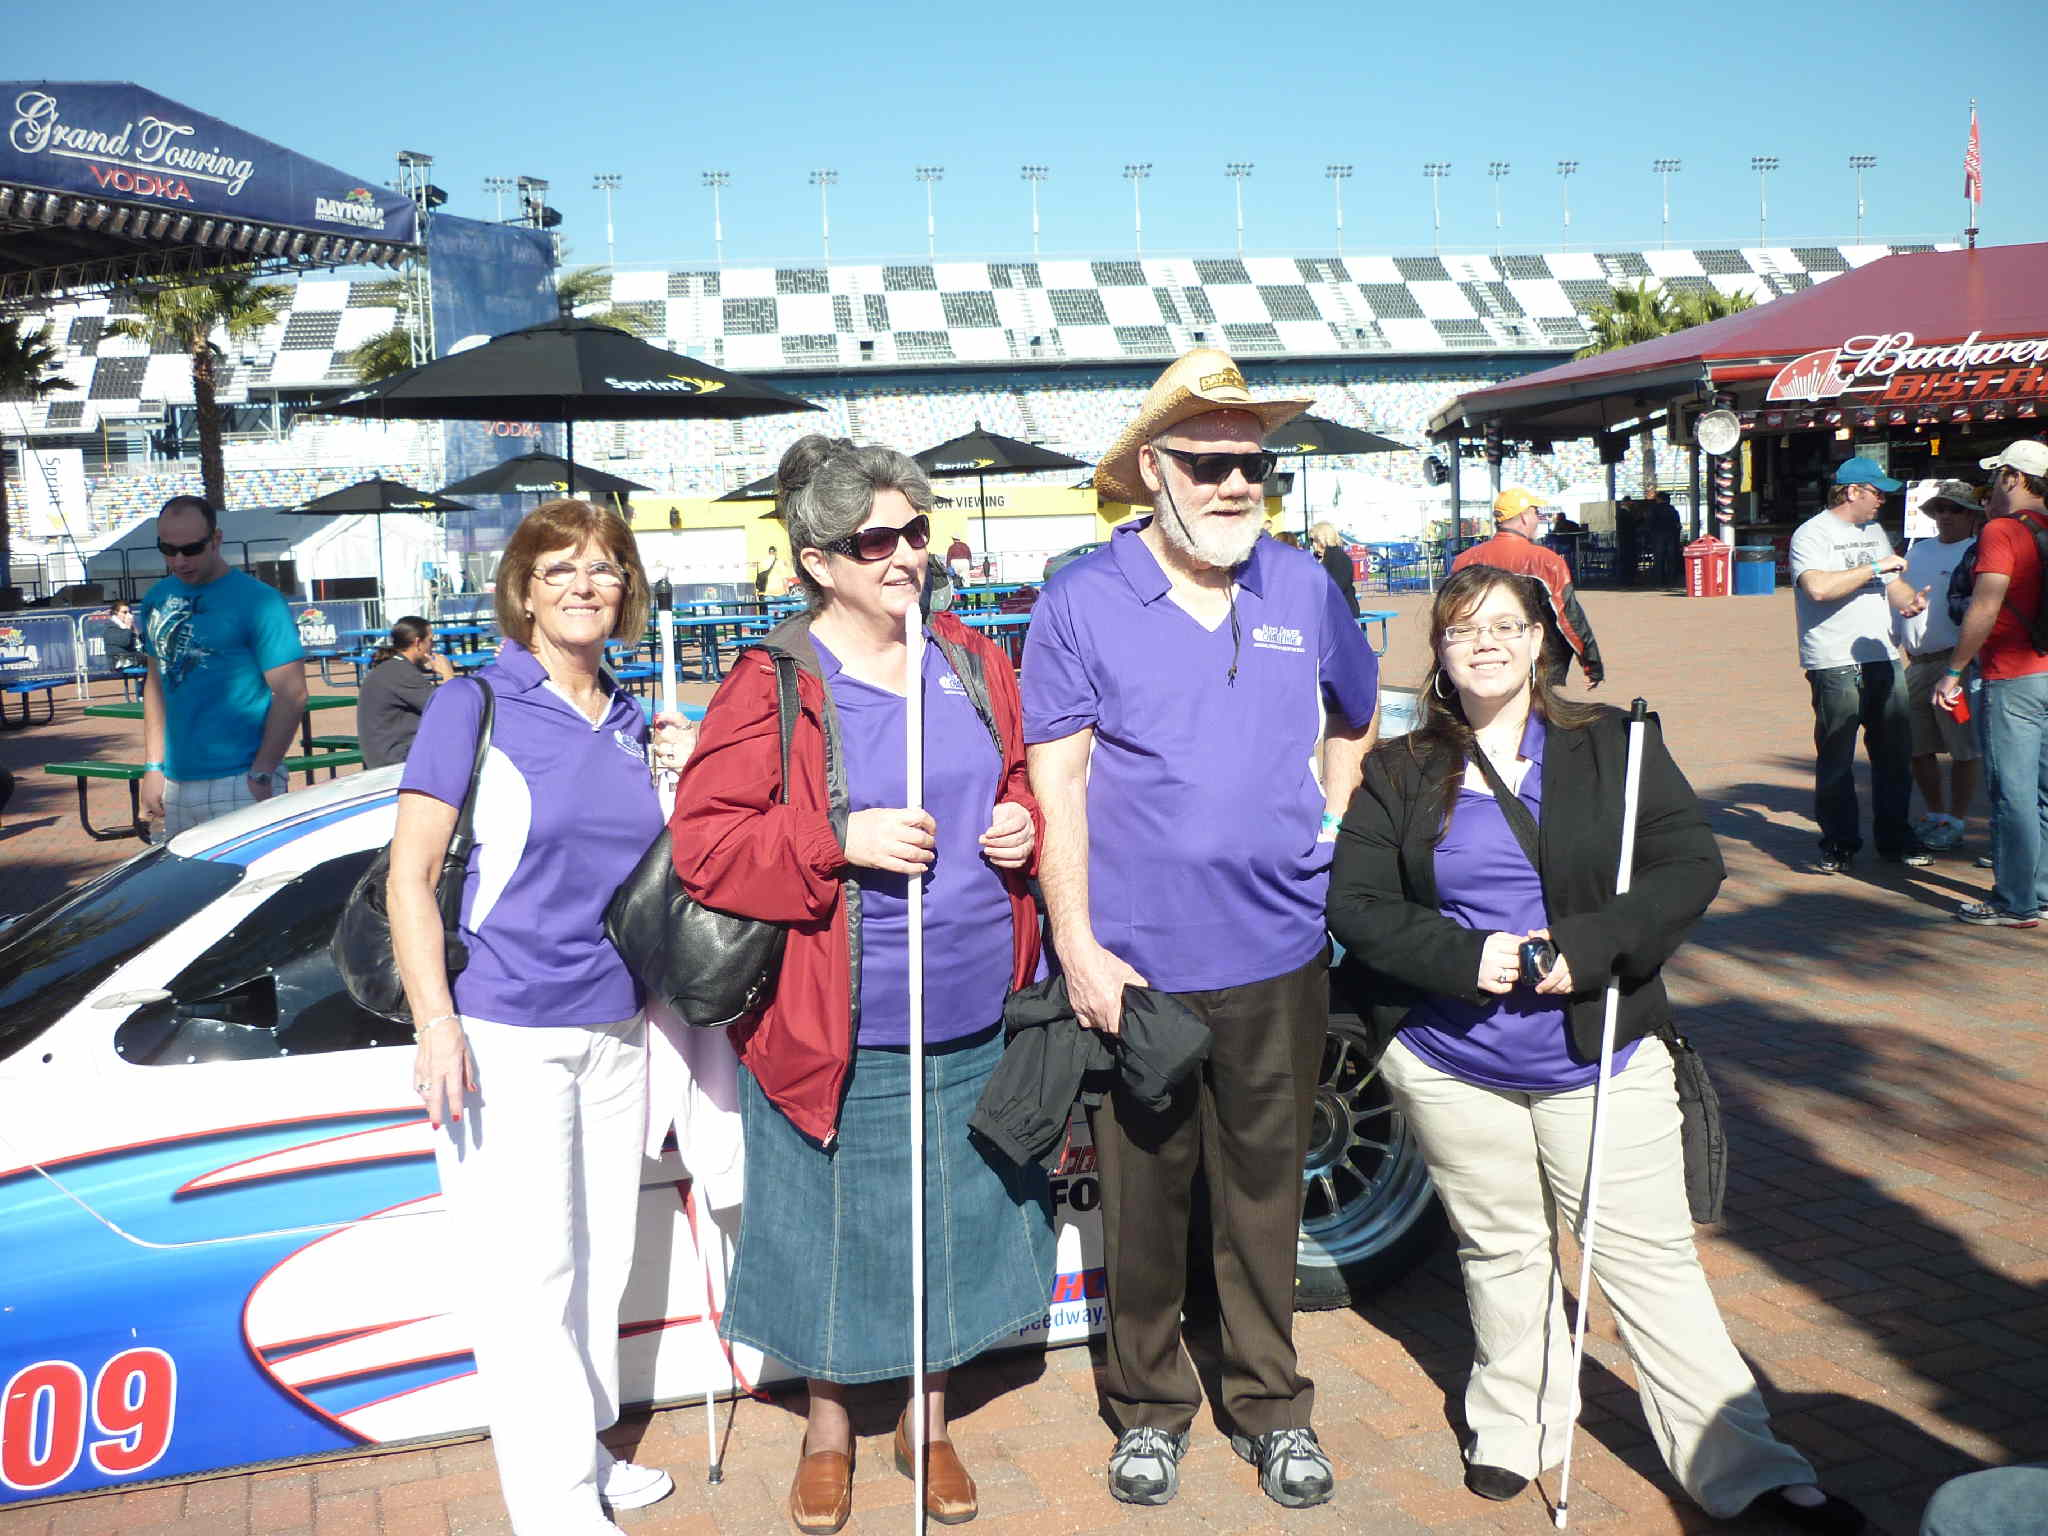 Pamela and John Glisson, Angela Dehart and Cathy Jackson standing in front of a race car at the race track